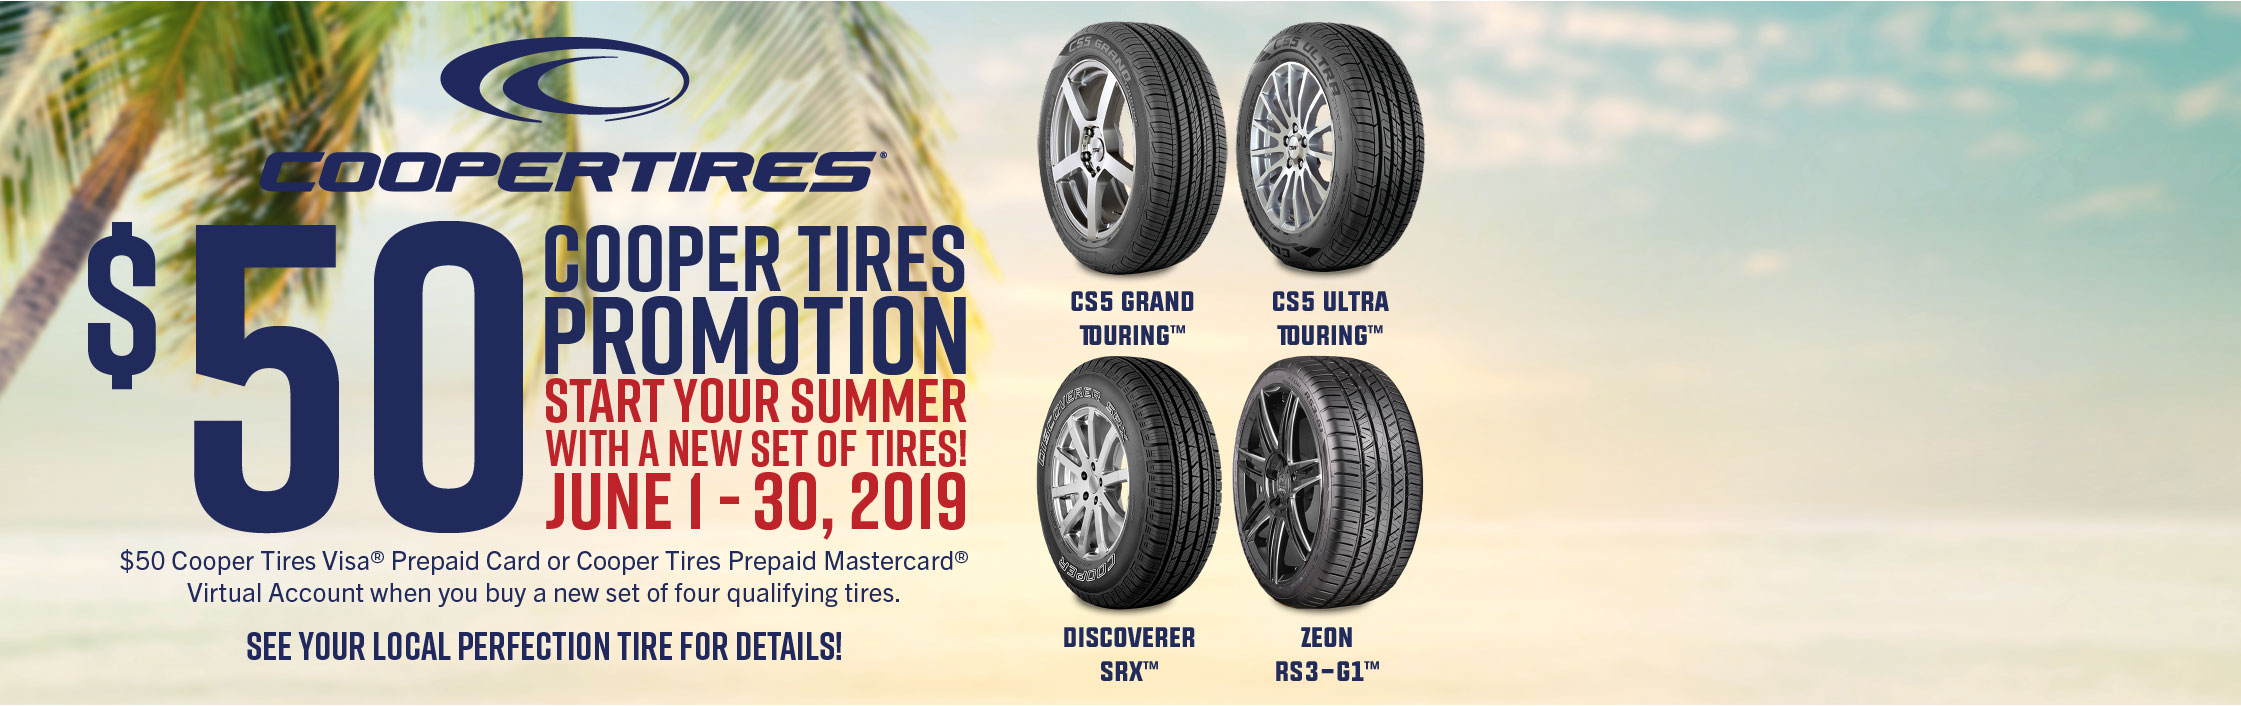 Cooper Tires Promotion